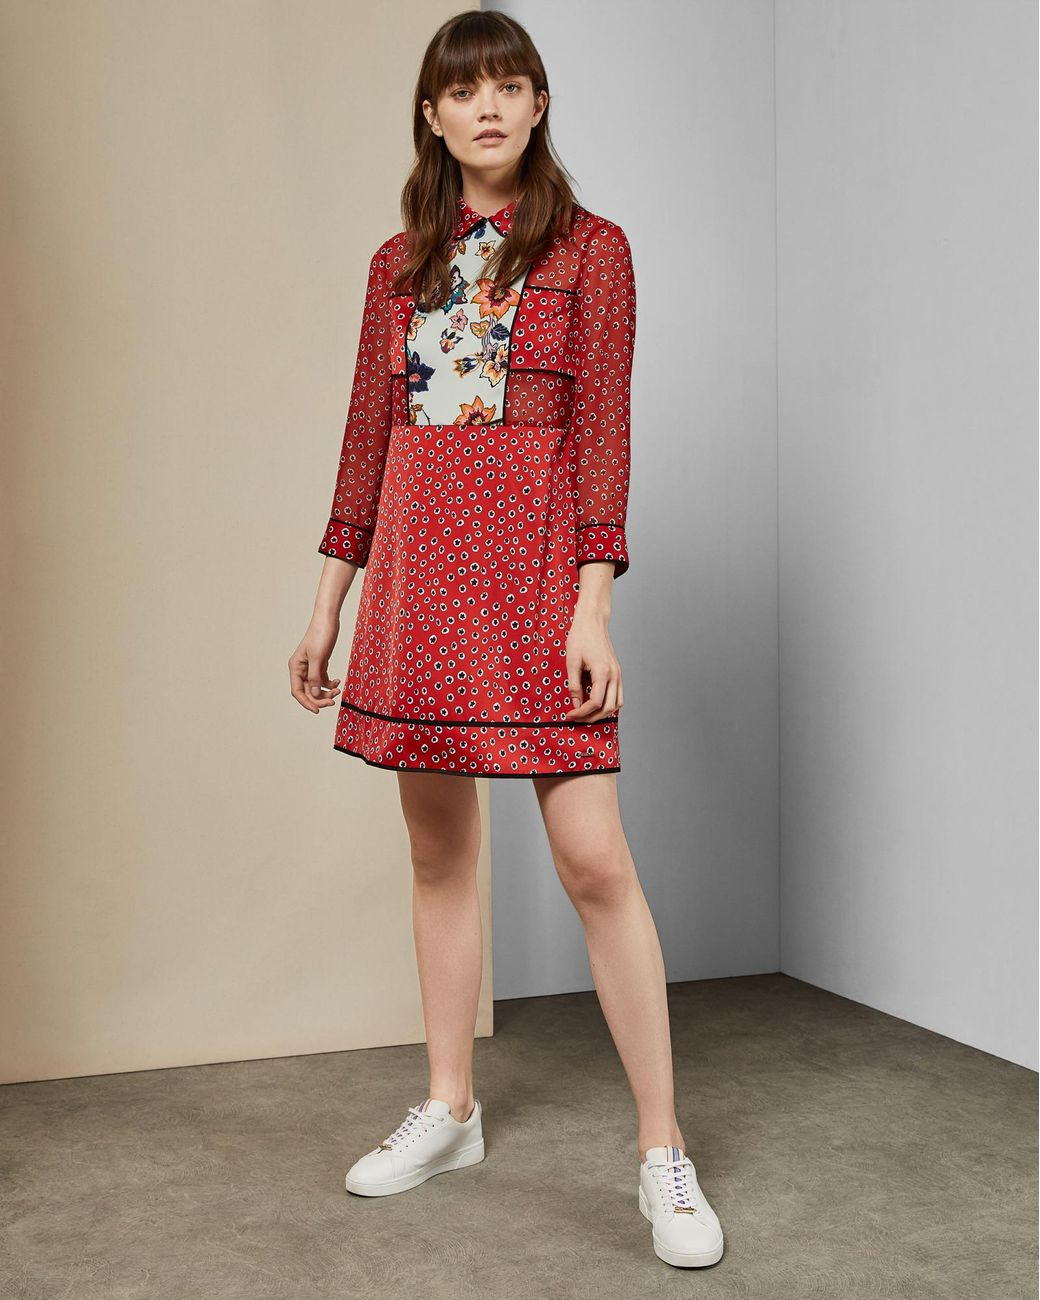 afb8a49018c9 Lyst - Ted Baker Valoria Floral Dress in Red - Save 30%